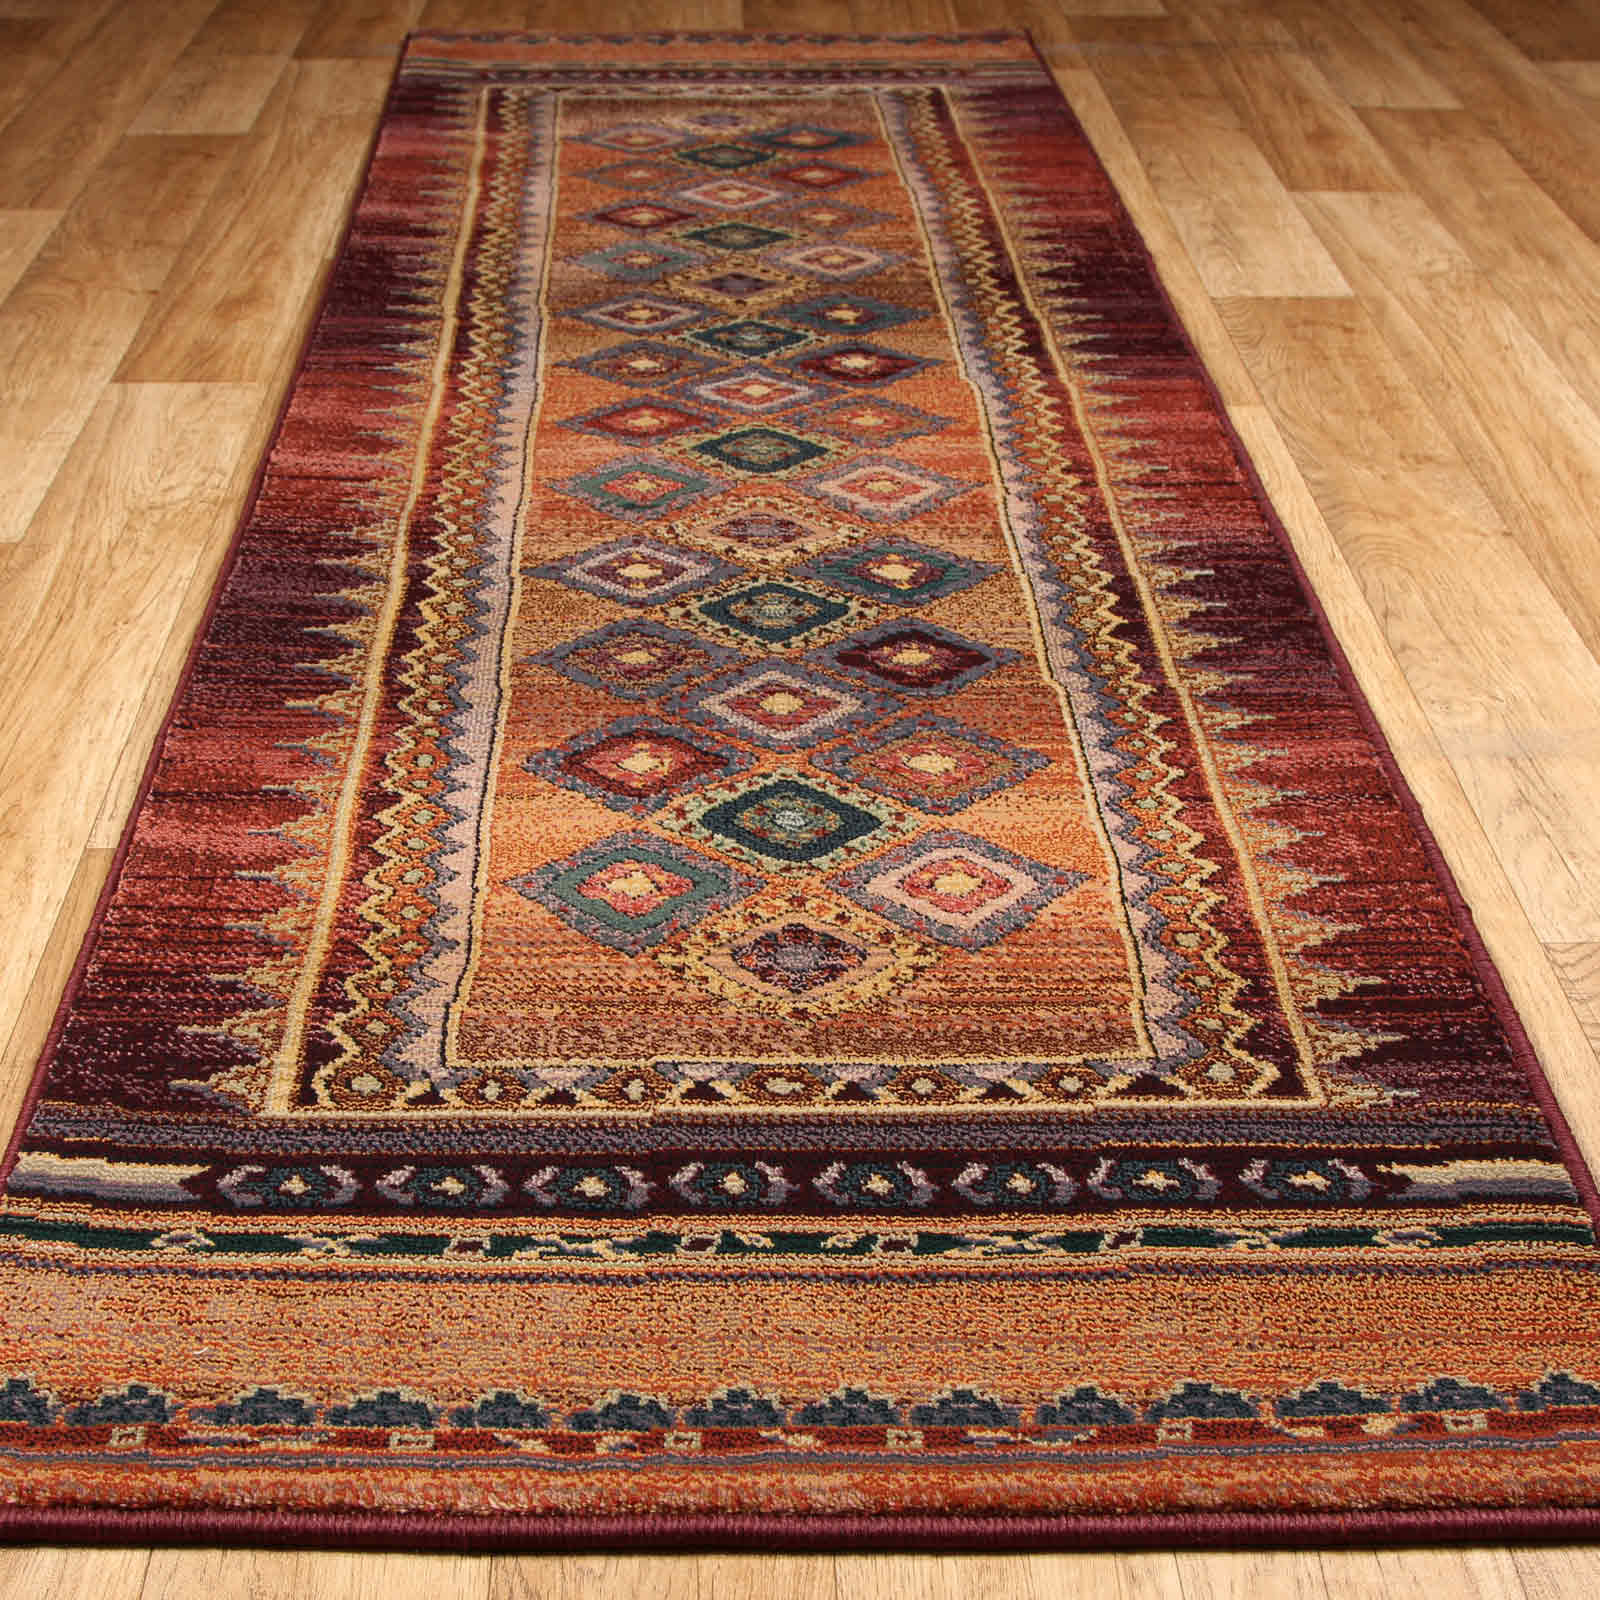 How to decorate your Home with Runner Rug